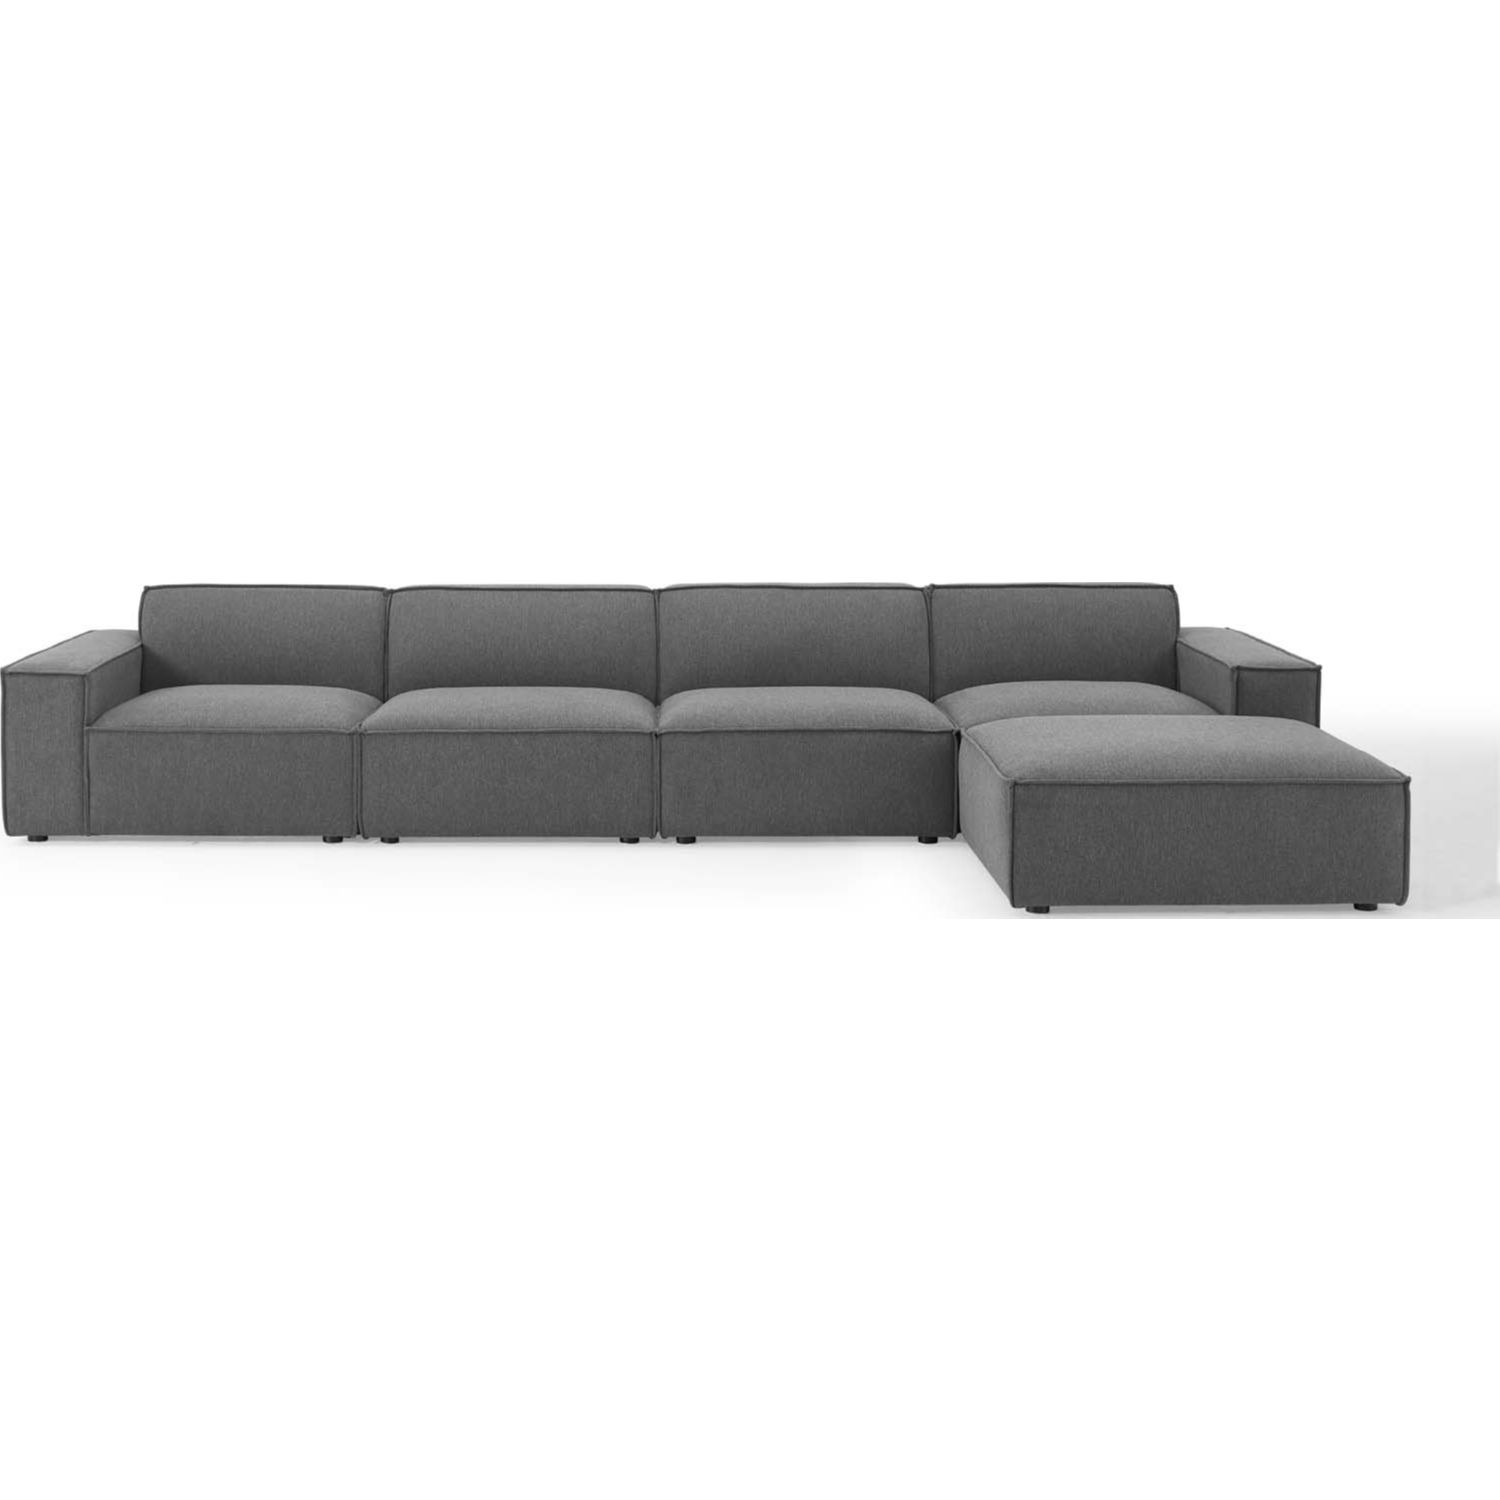 5-Piece Sectional Sofa In Charcoal Fabric - image-1